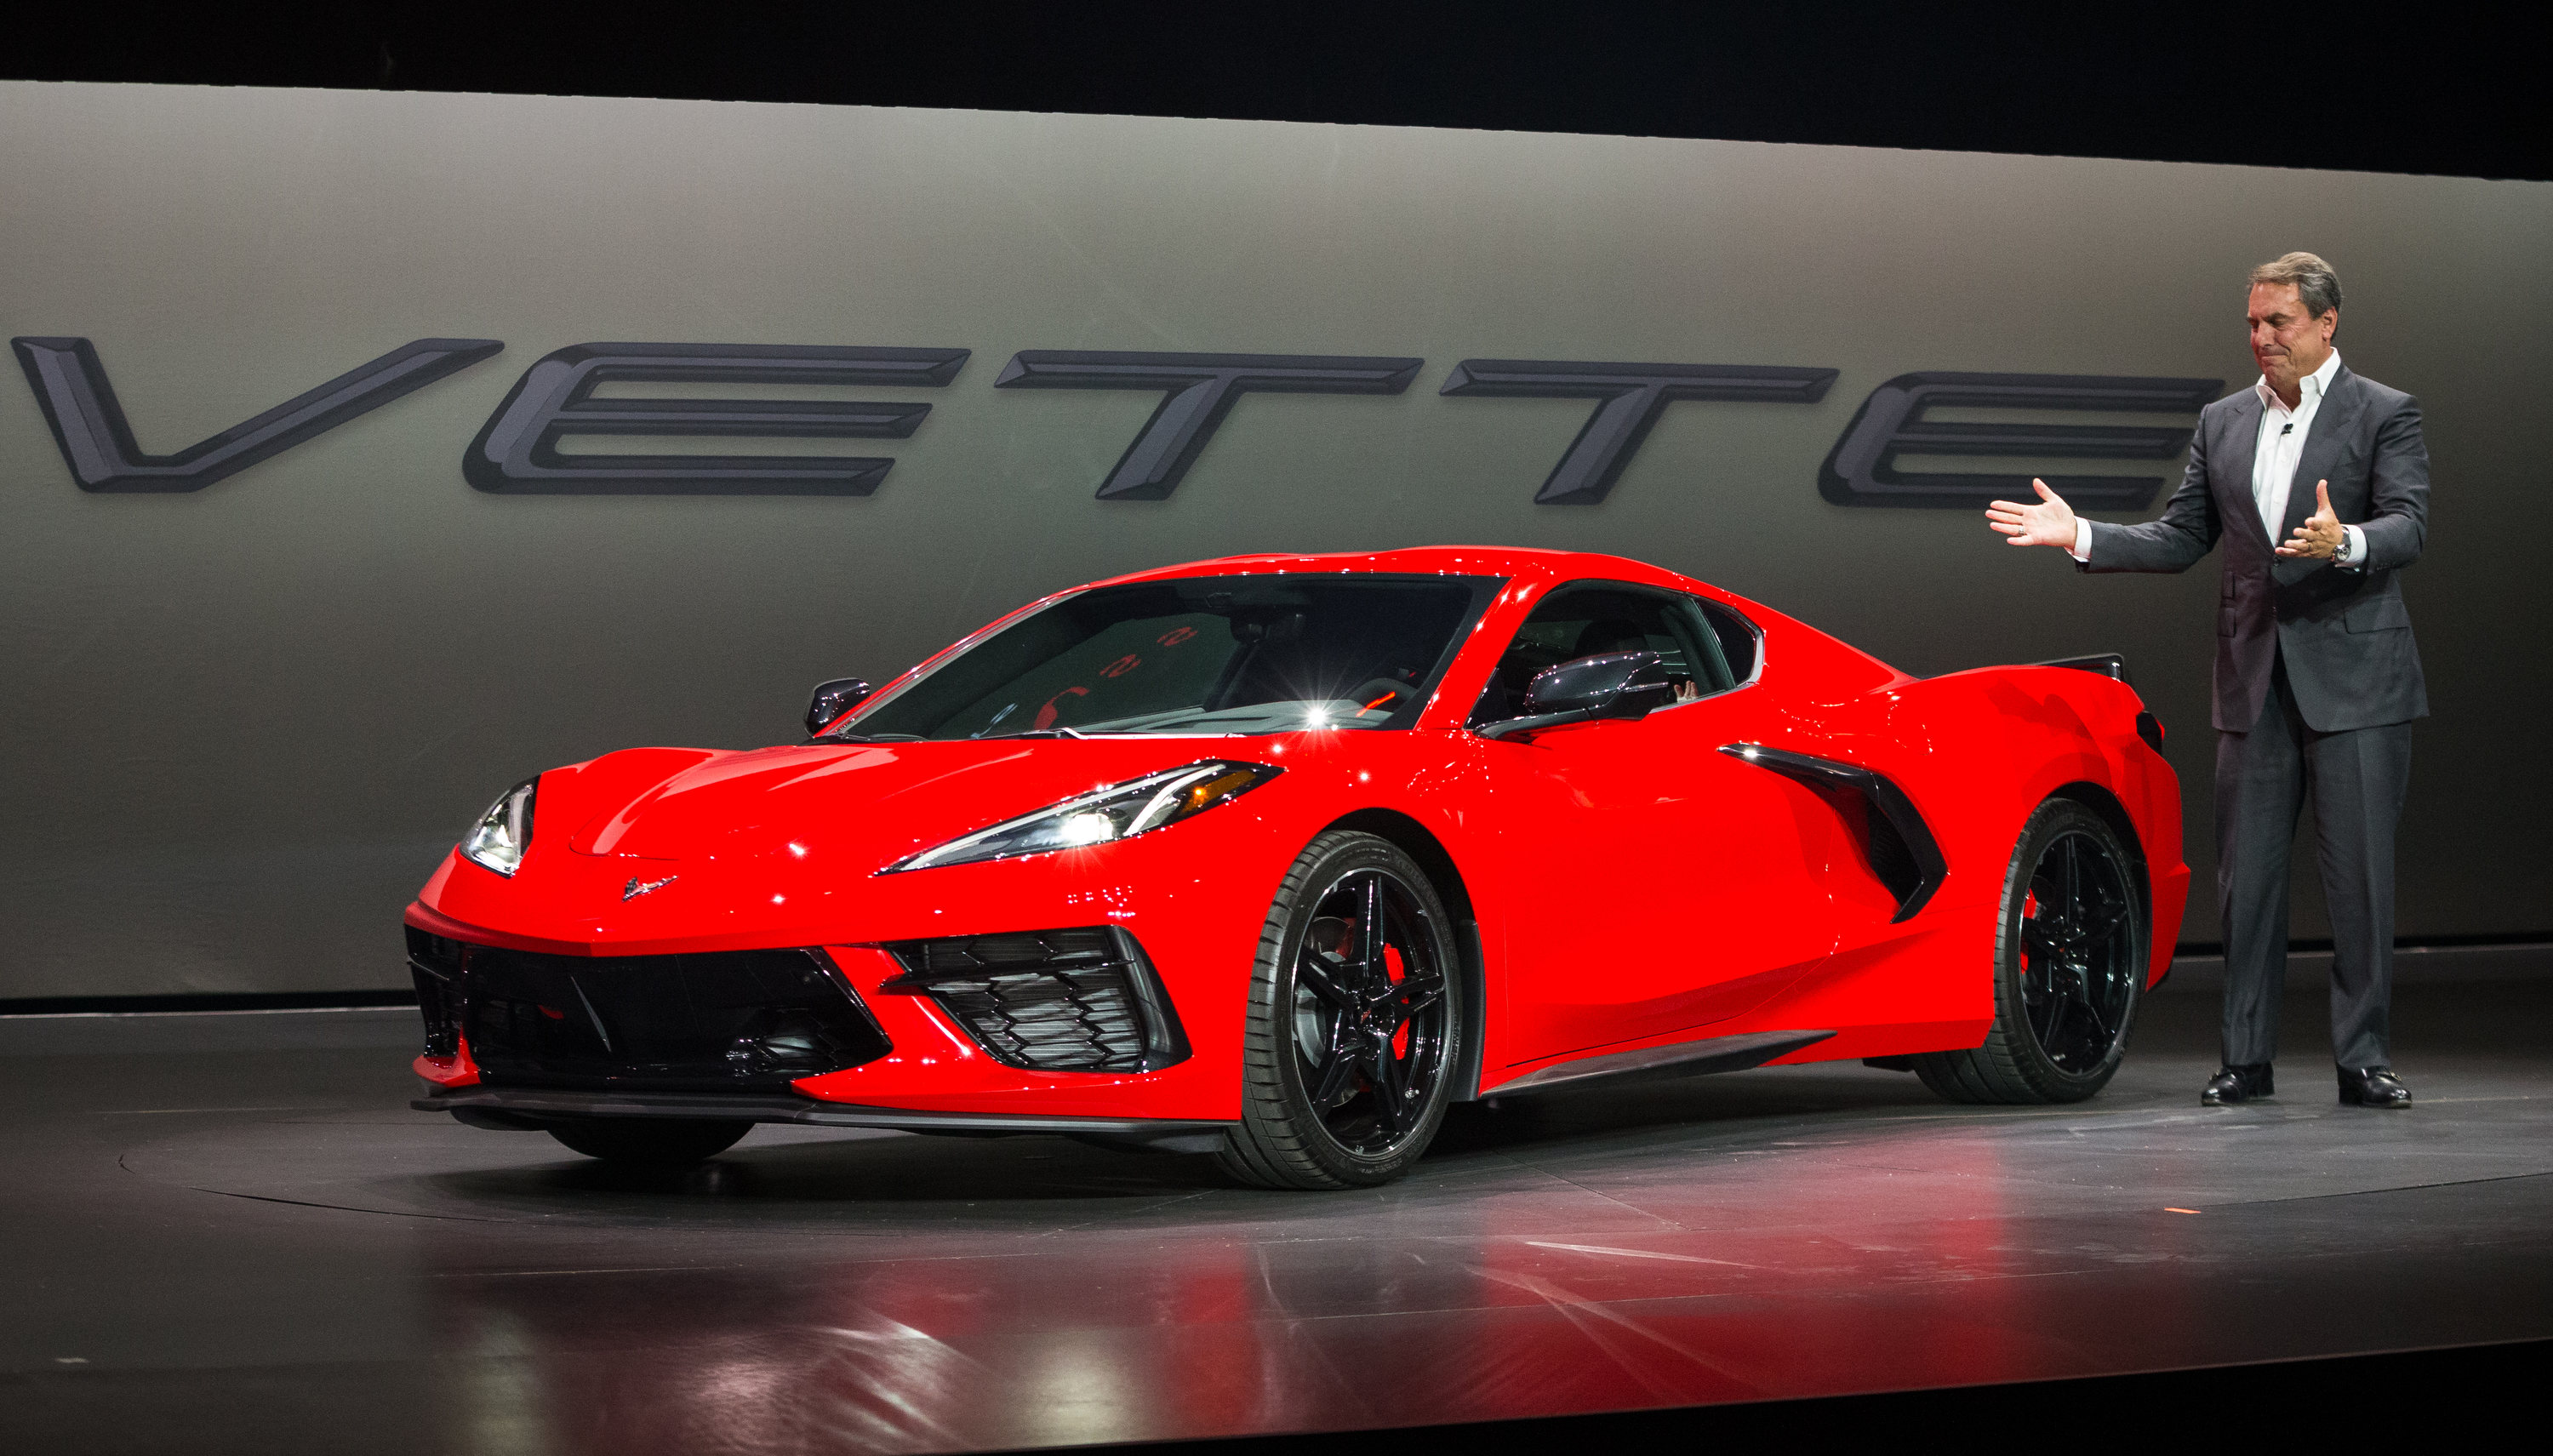 65 A 2020 Chevrolet Corvette C8 Redesign